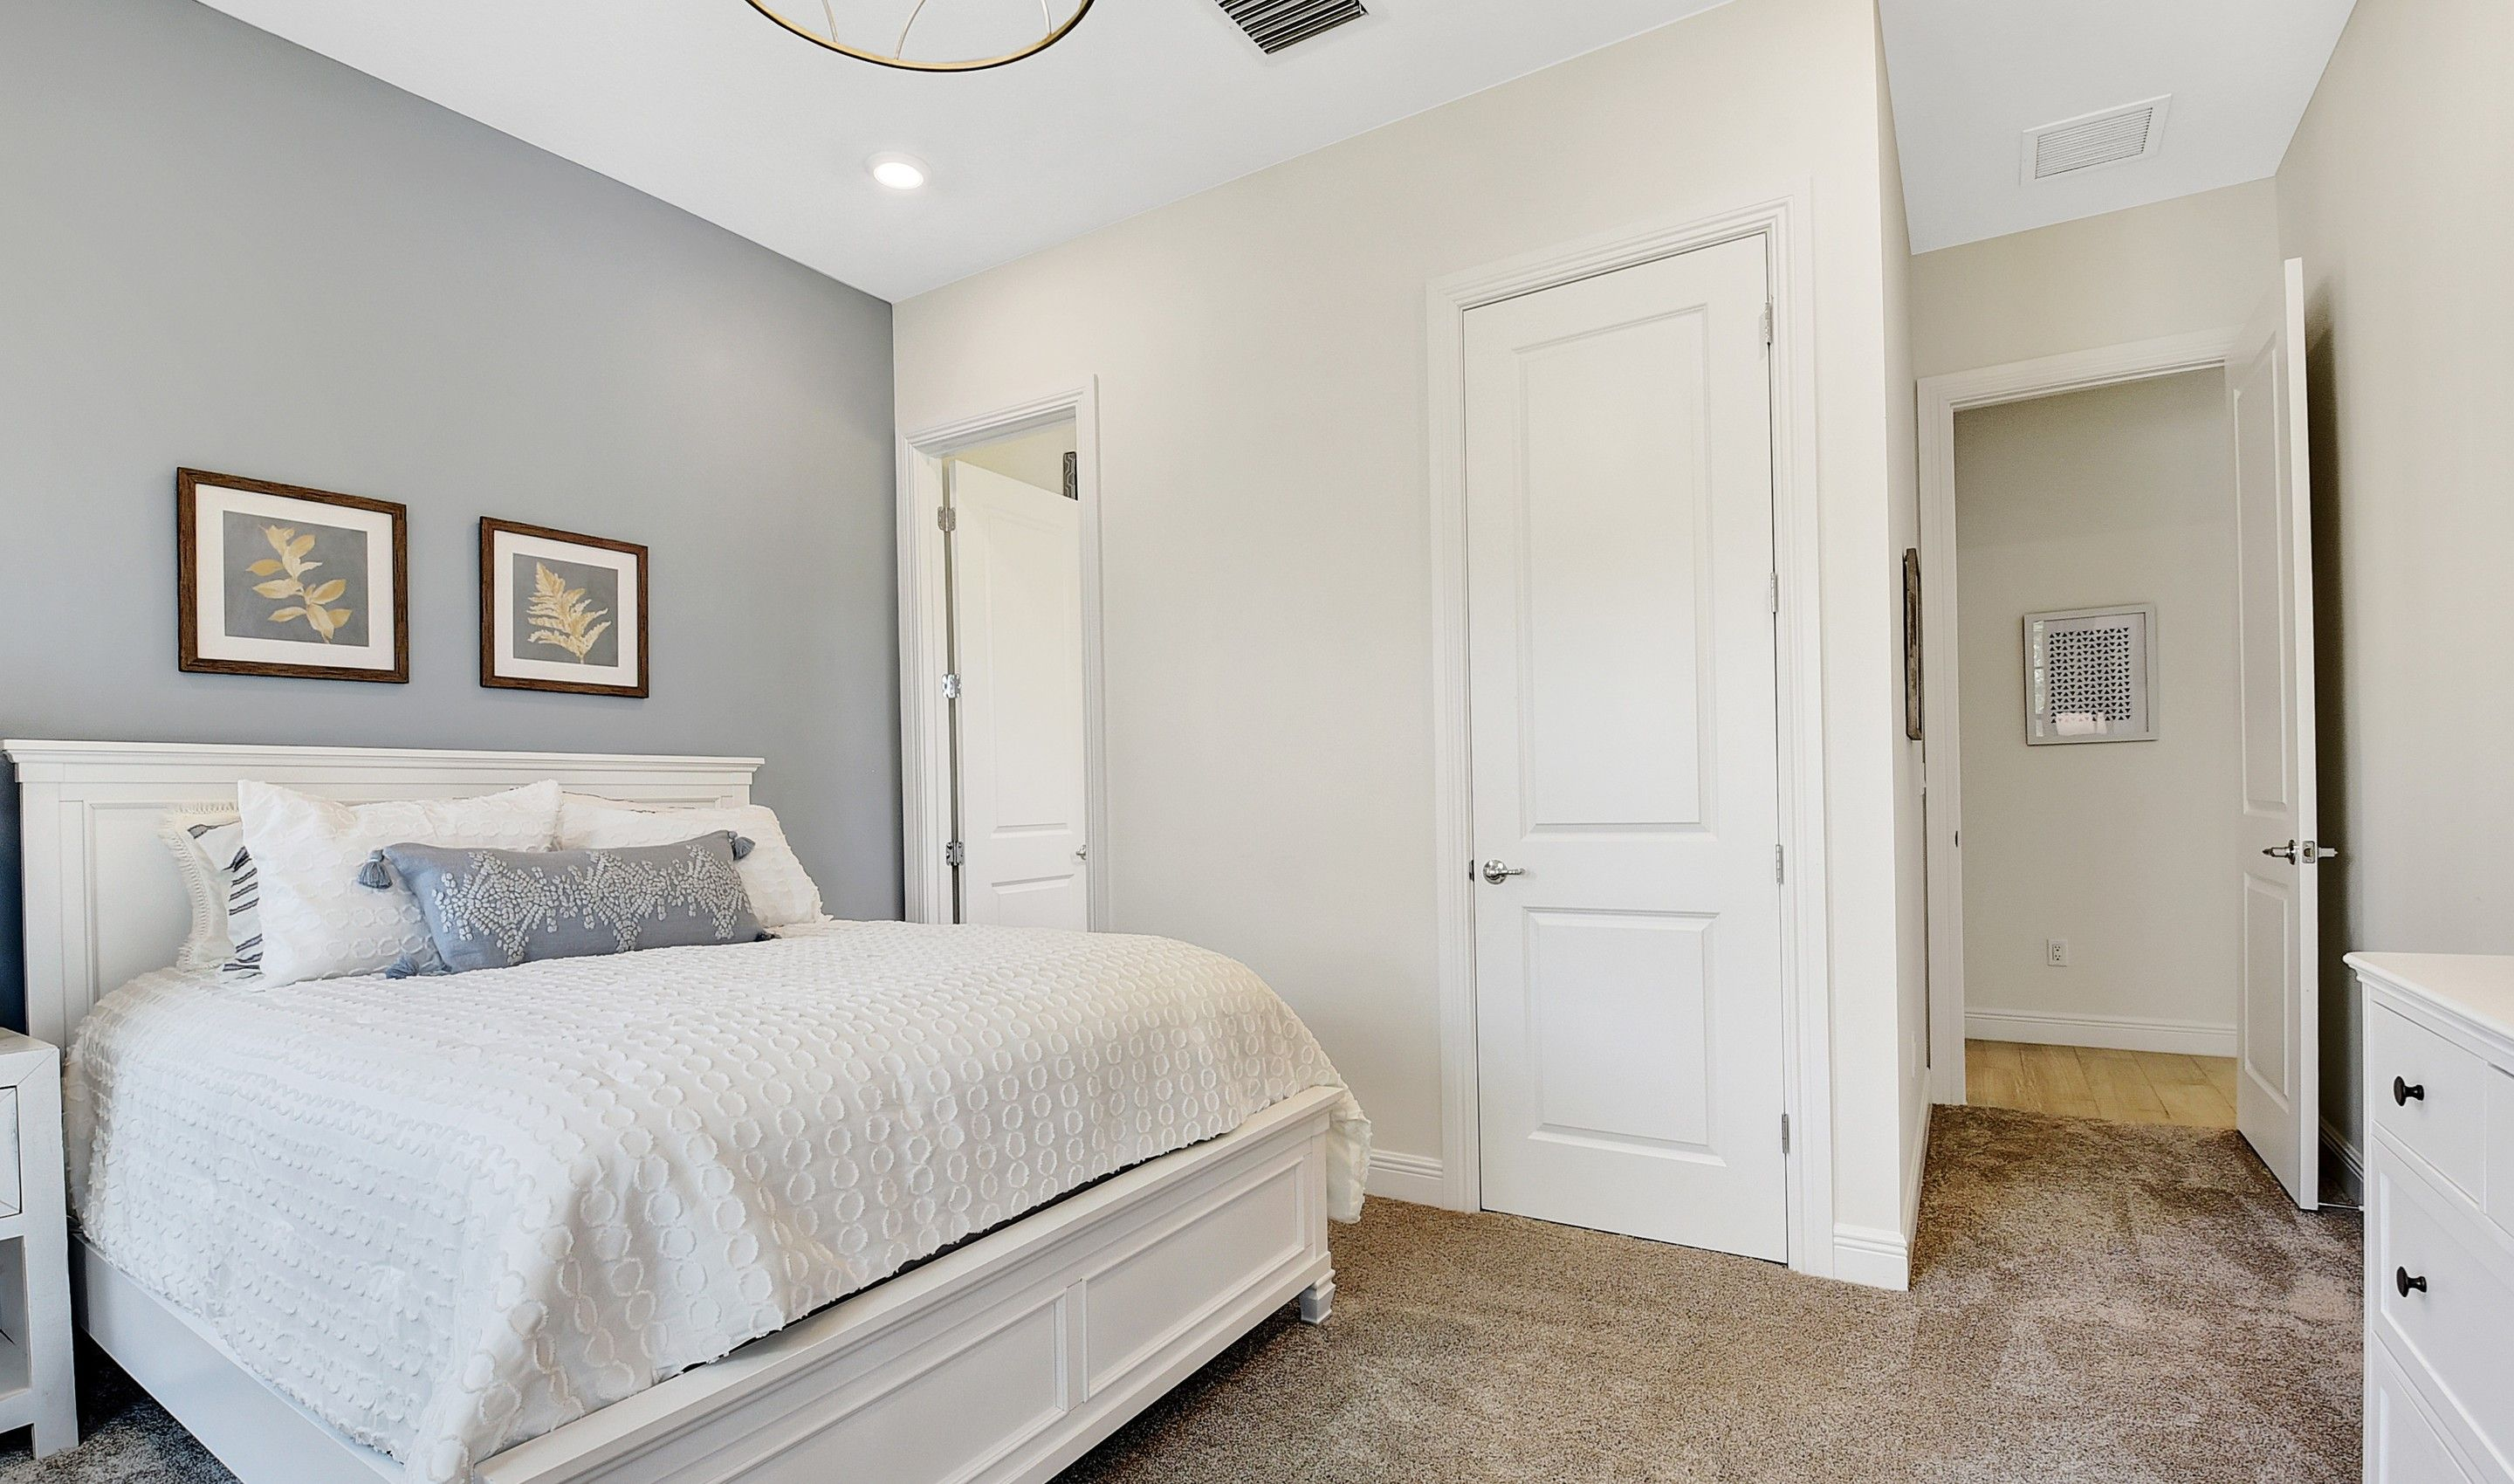 Bedroom featured in the Soleil By K. Hovnanian's® Four Seasons in Broward County-Ft. Lauderdale, FL